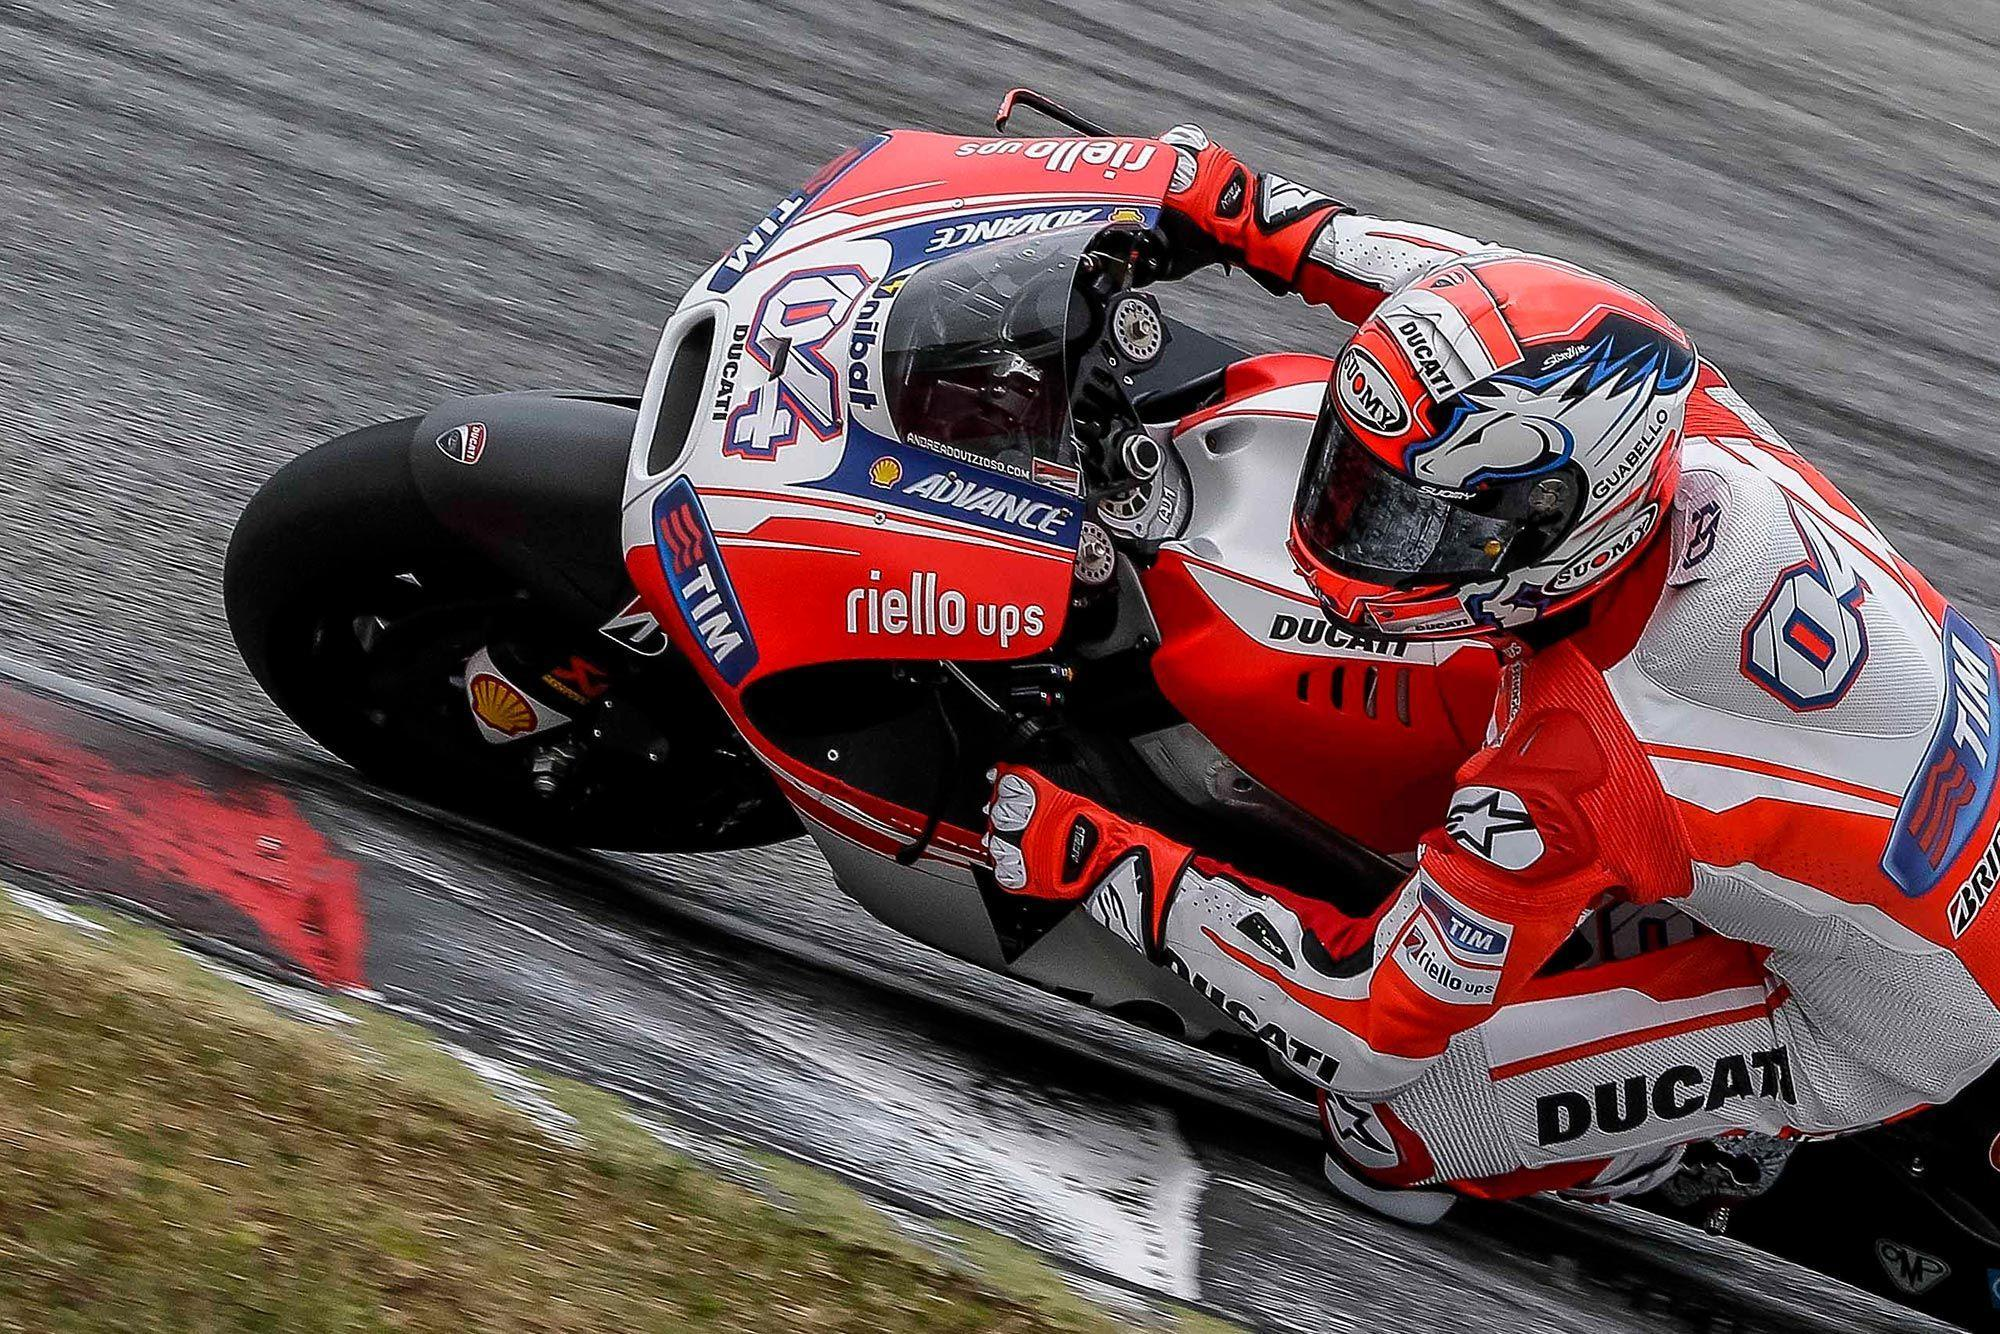 MotoGP Sepang 2 Test Summary – Day 1: Hard Work, Heavy Weather